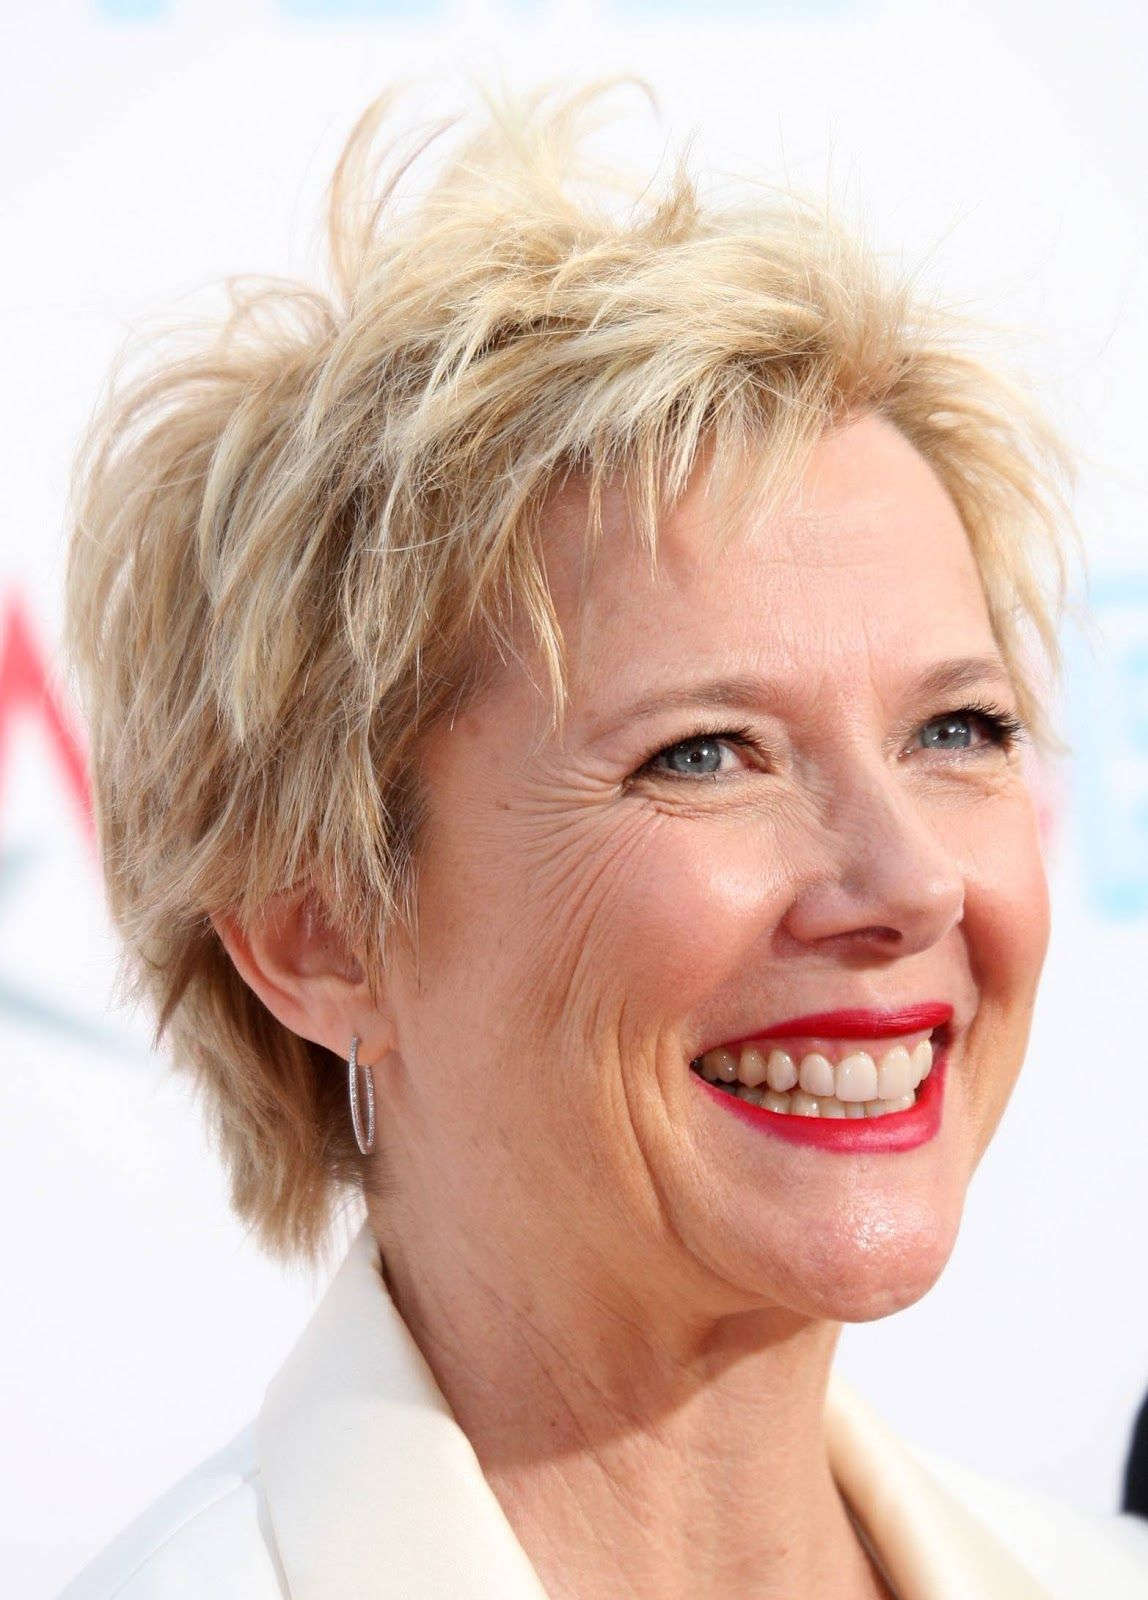 Haircuts For Women Over 50 With Fine Thin Hair Pictures Ofshort Hairstyles For Women Over 50 With Thi Hair Styles Short Hair Styles Haircut For Older Women